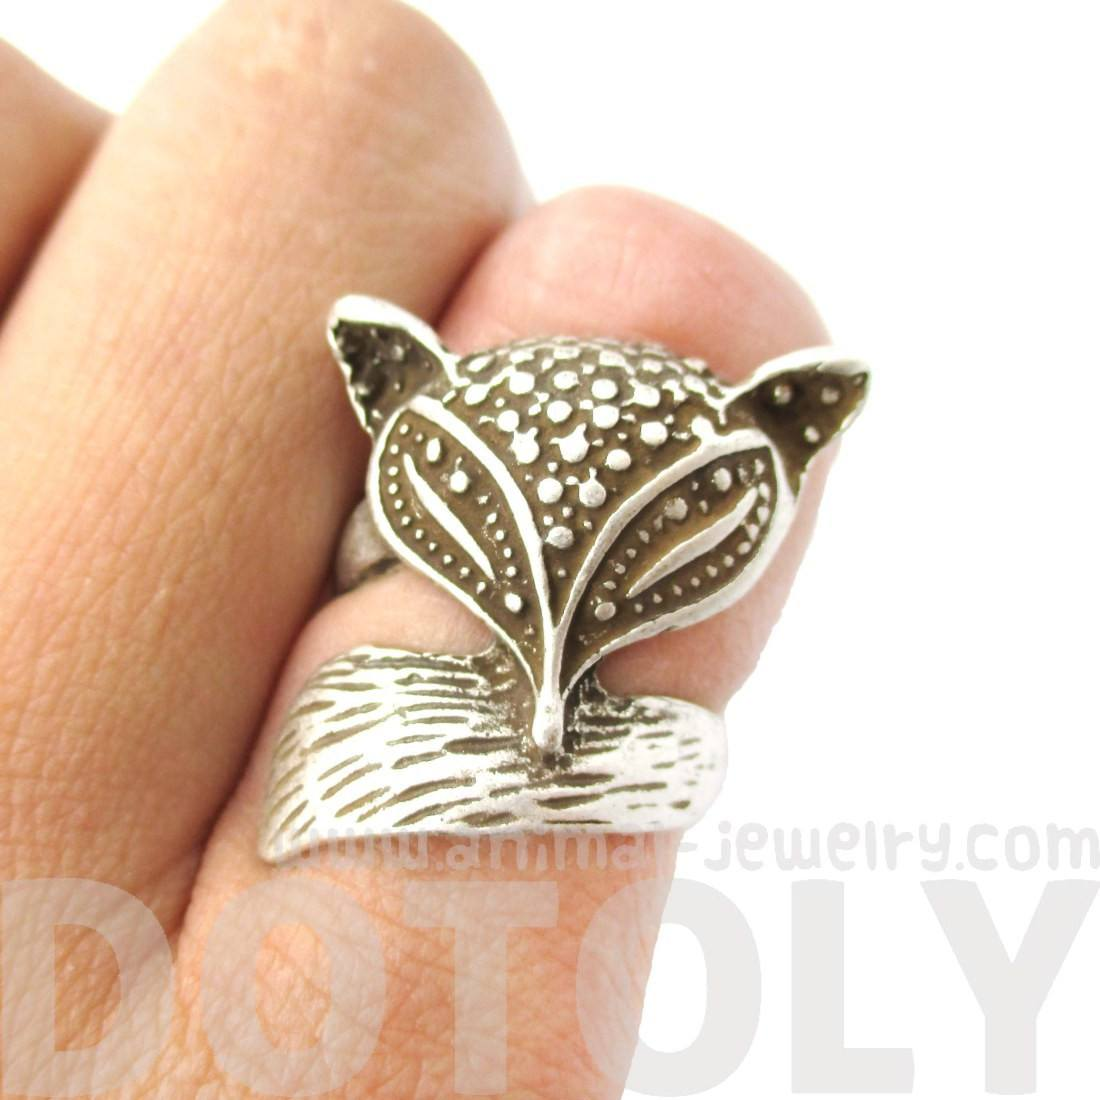 Abstract Fox Face Shaped Animal Wrap Around Ring in Silver | US Size 5